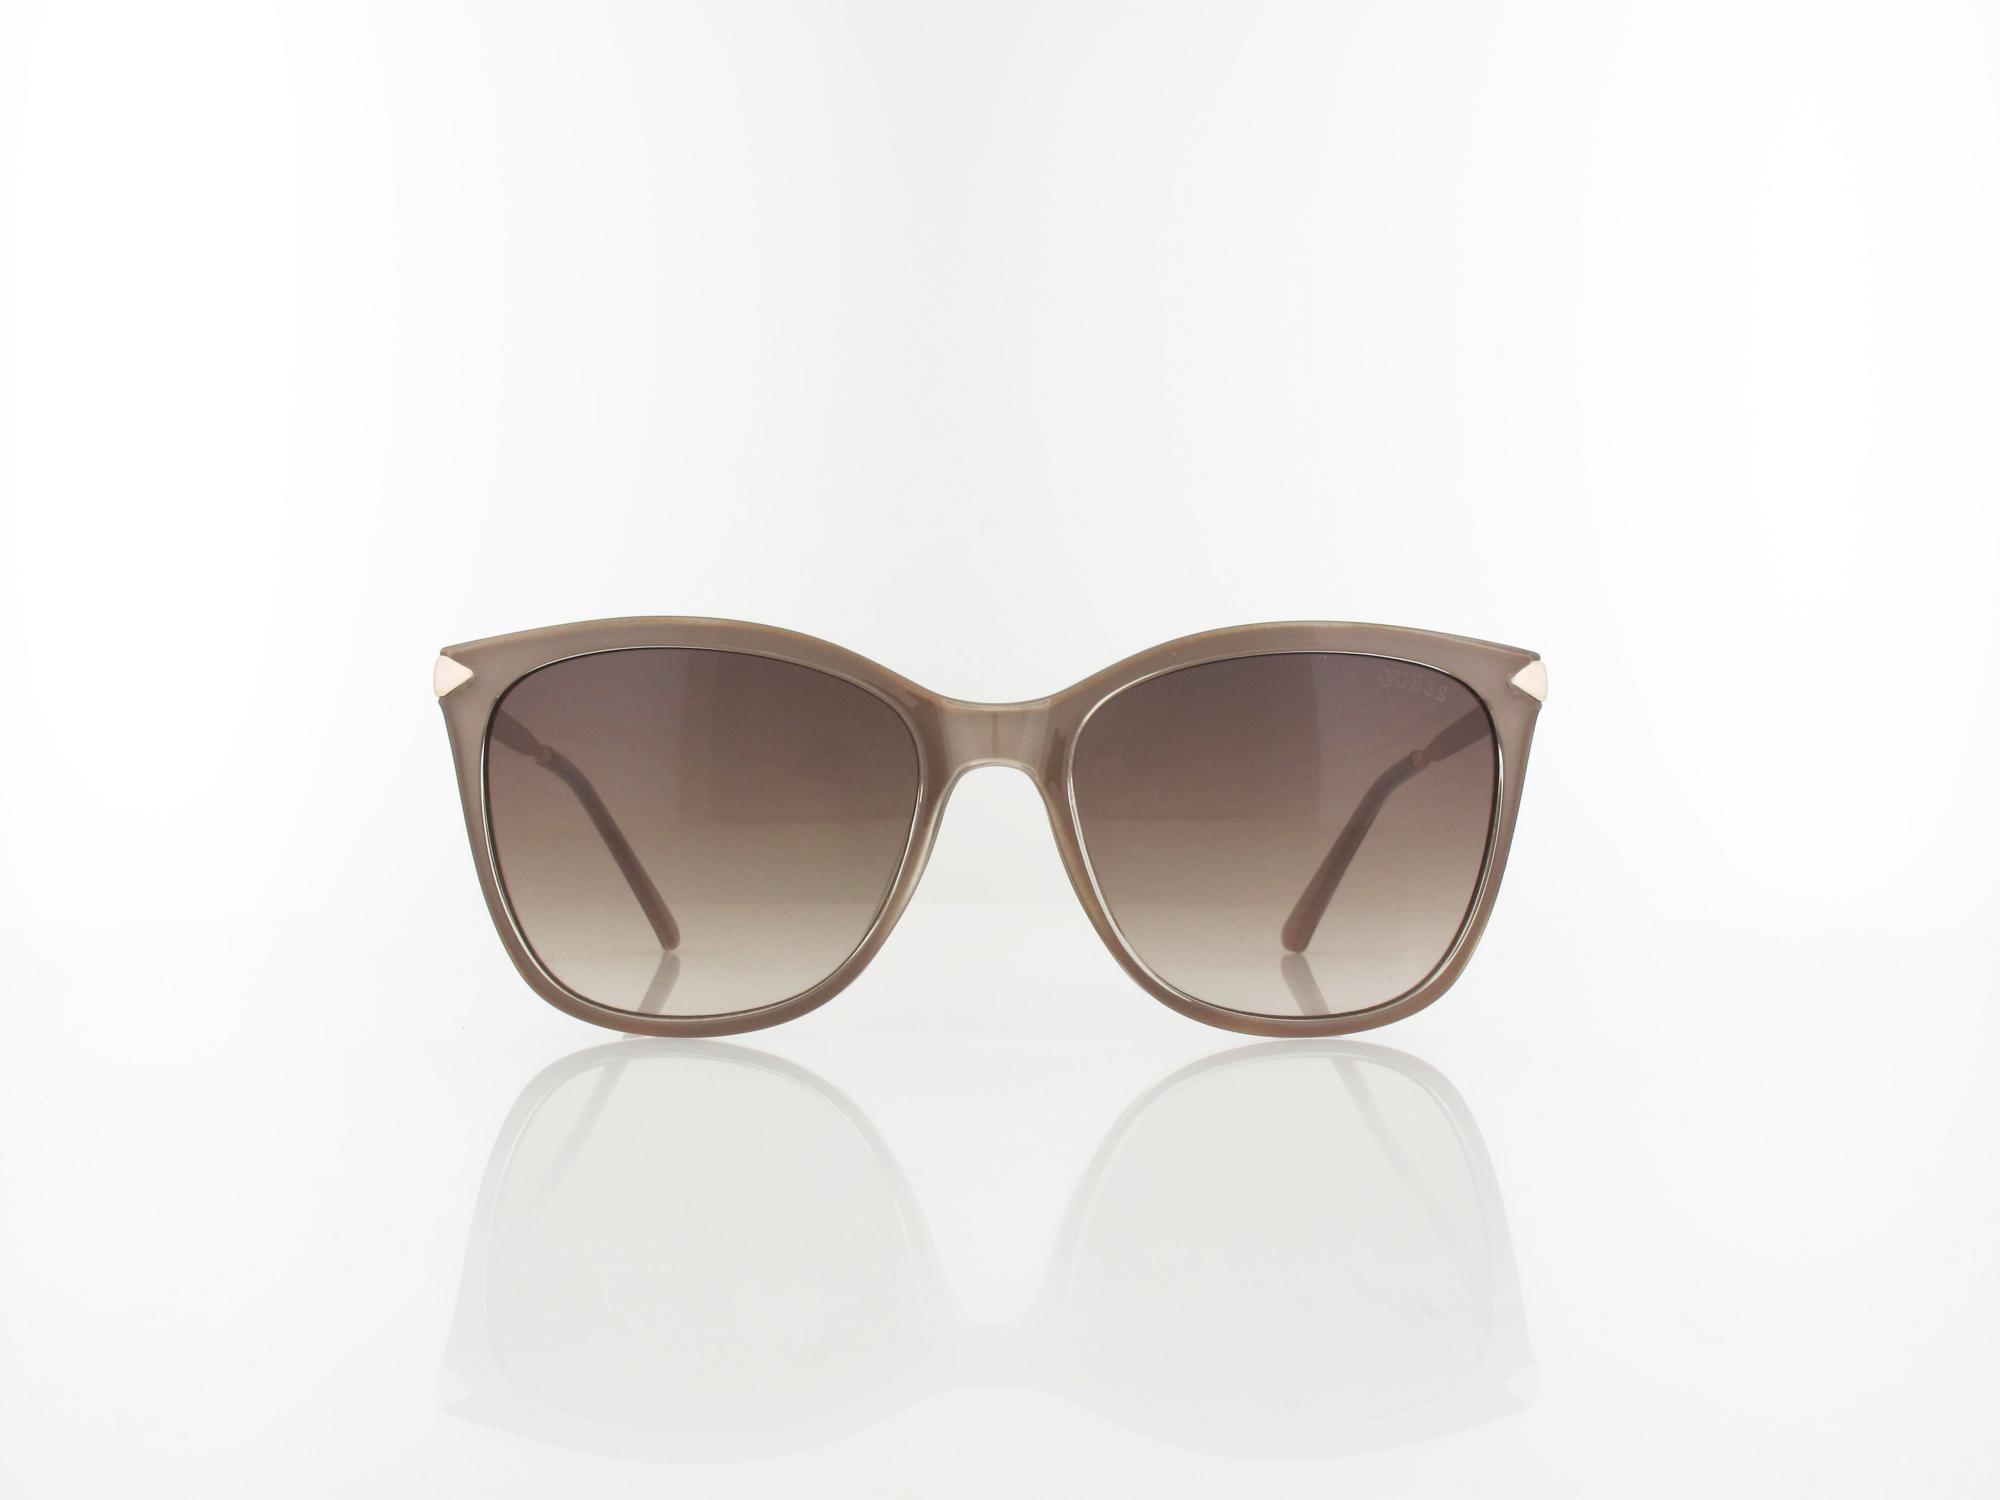 Guess | GU7483/S 57F 56 | shiny beige / brown gradient